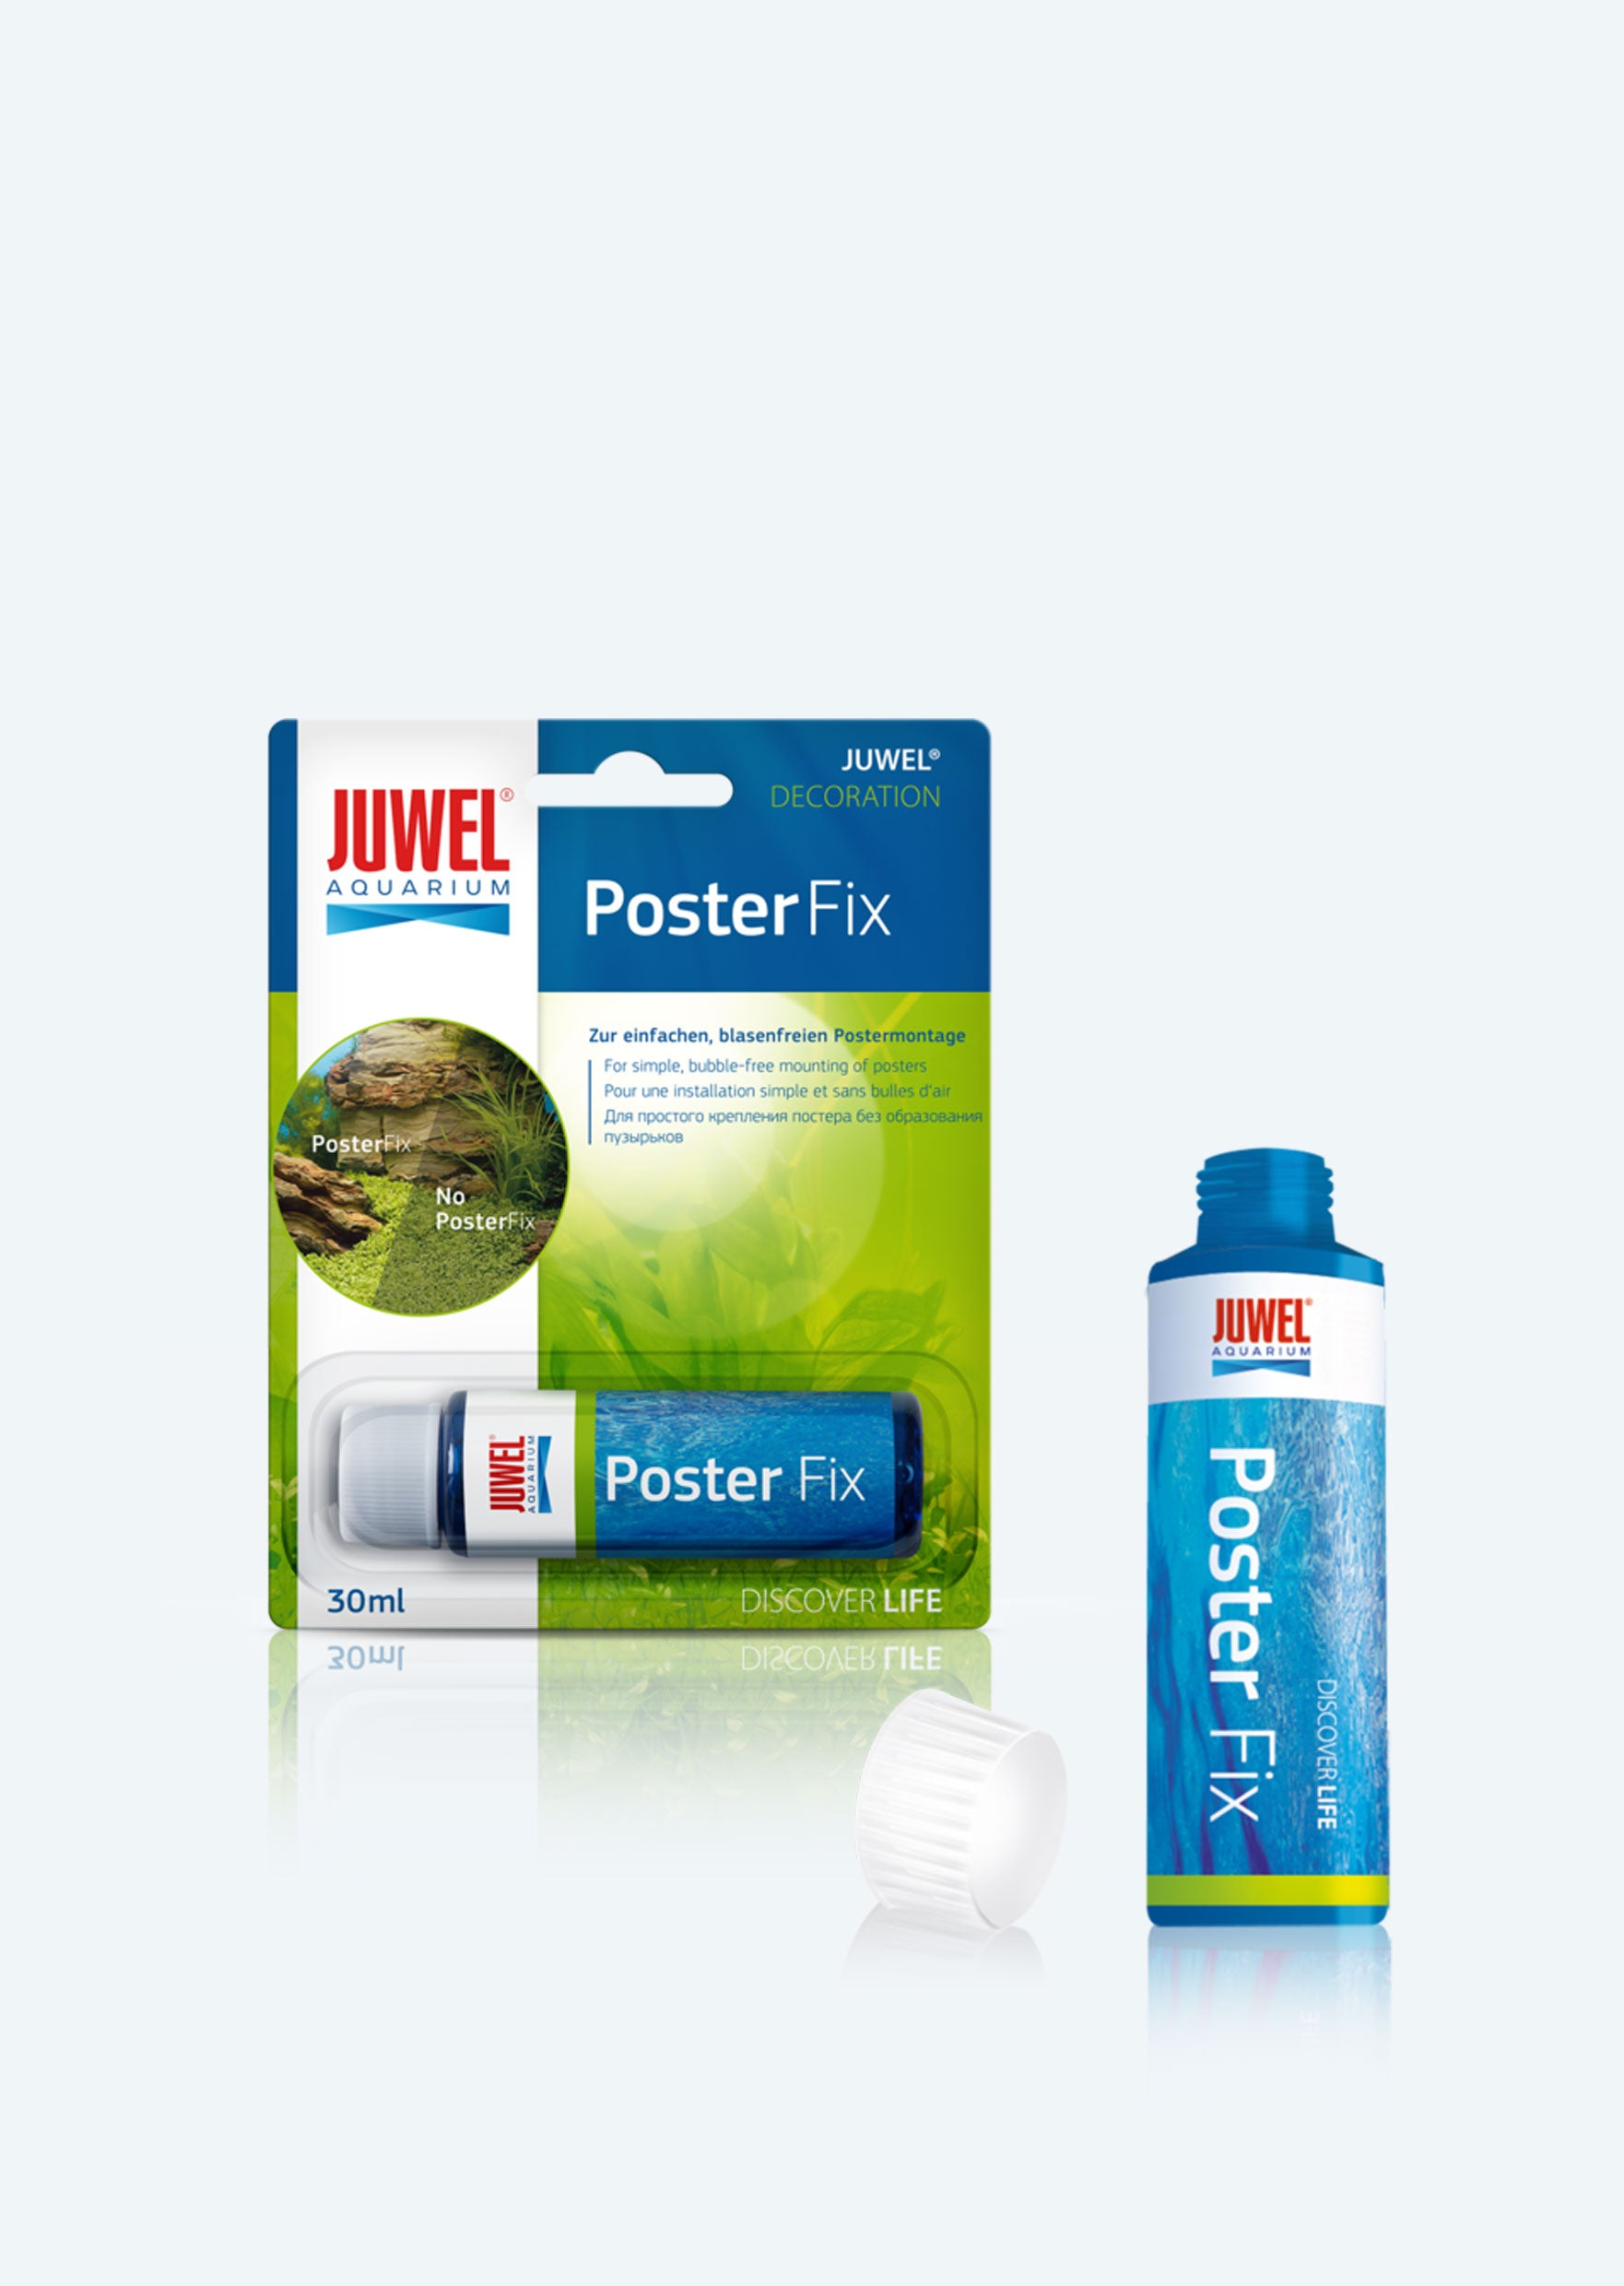 Buy Juwel Poster Fix Online Free Uae Delivery Over 100 Aed